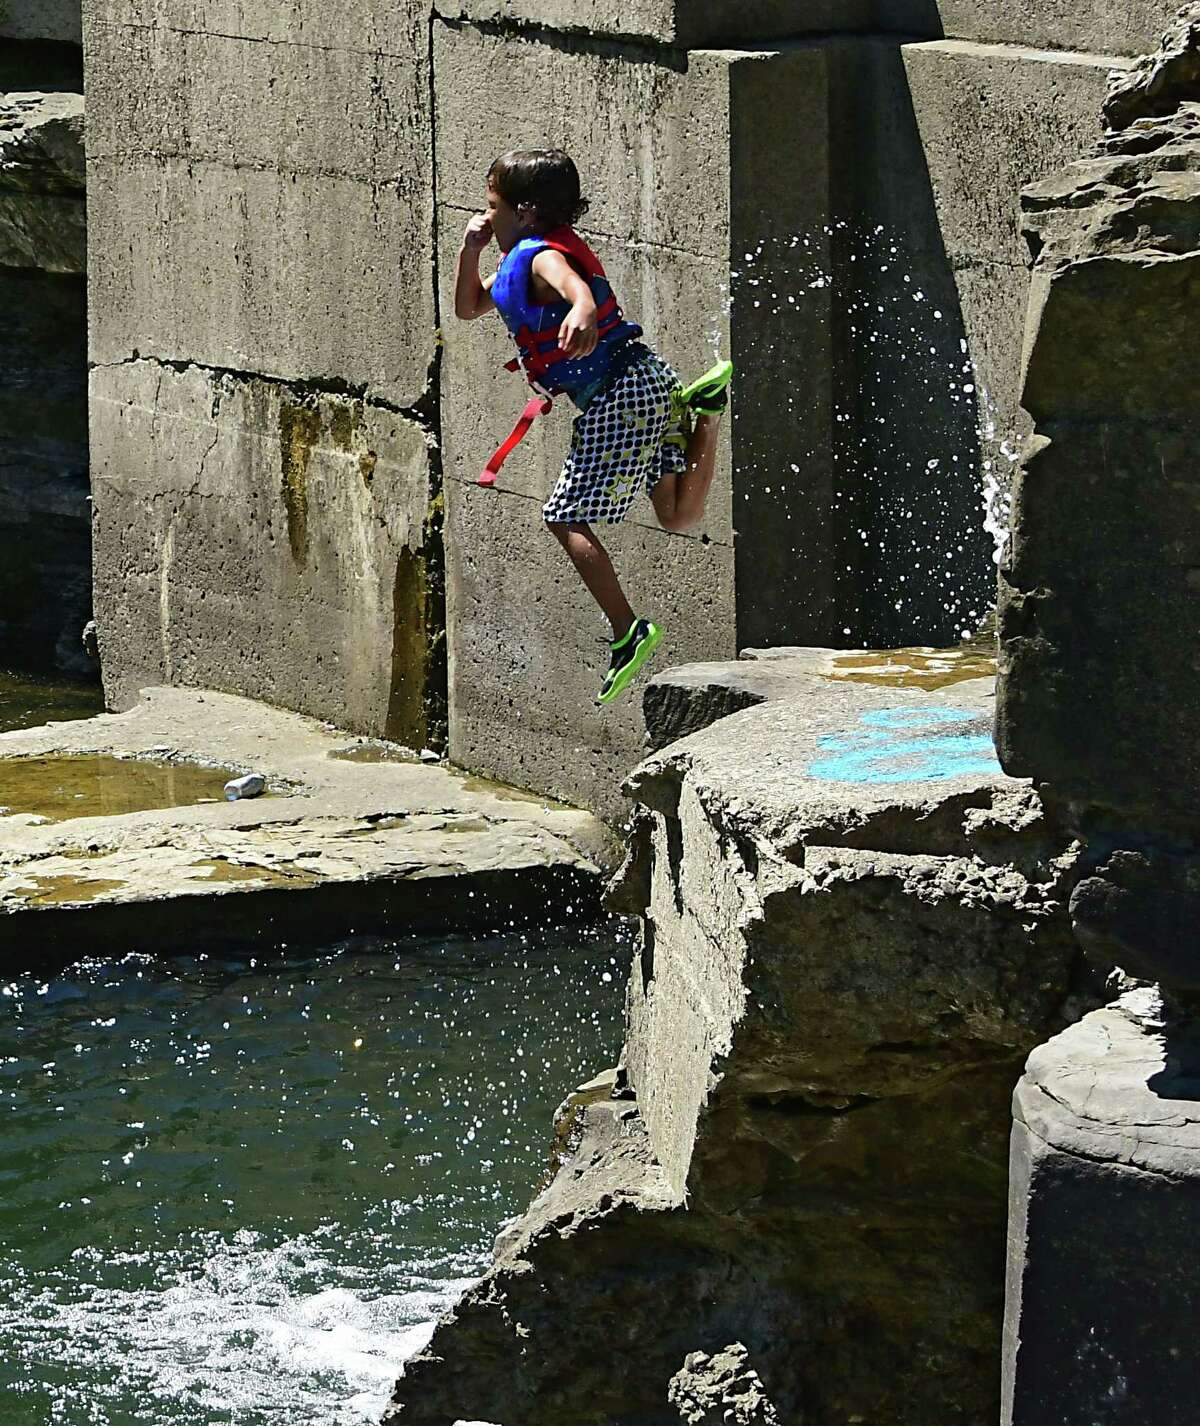 Jaeden Randoph, 7, of Schenectady cools off by jumping off a cliff into the water below at French's Hollow Falls on Wednesday, June 24, 2020 in Guilderland, N.Y. (Lori Van Buren/Times Union)